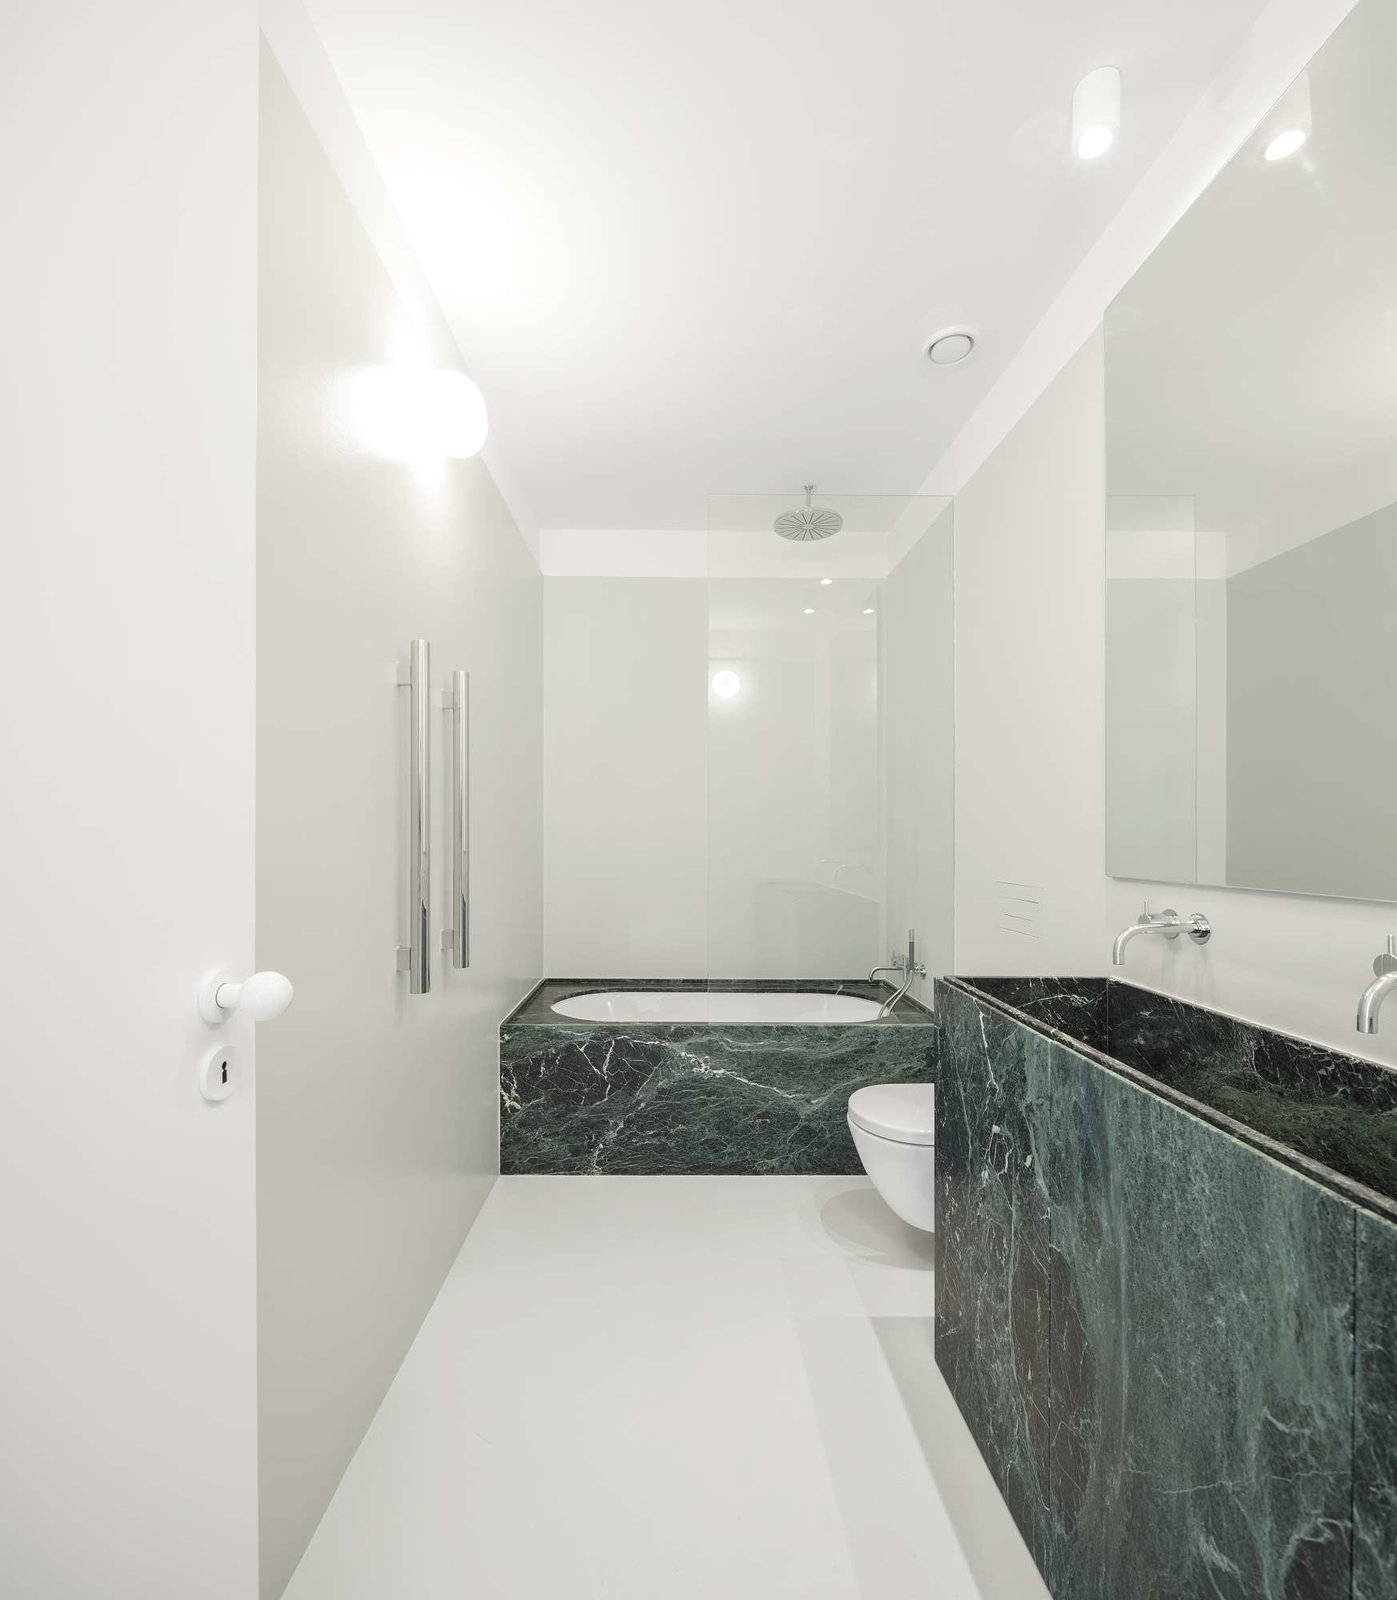 Tagged: Bath Room, Undermount Sink, Undermount Tub, Stone Counter, Ceiling Lighting, Wall Lighting, One Piece Toilet, Open Shower, and Marble Counter.  Best Photos from A Luminous Renovation in Portugal Creates a Bright and Airy Apartment